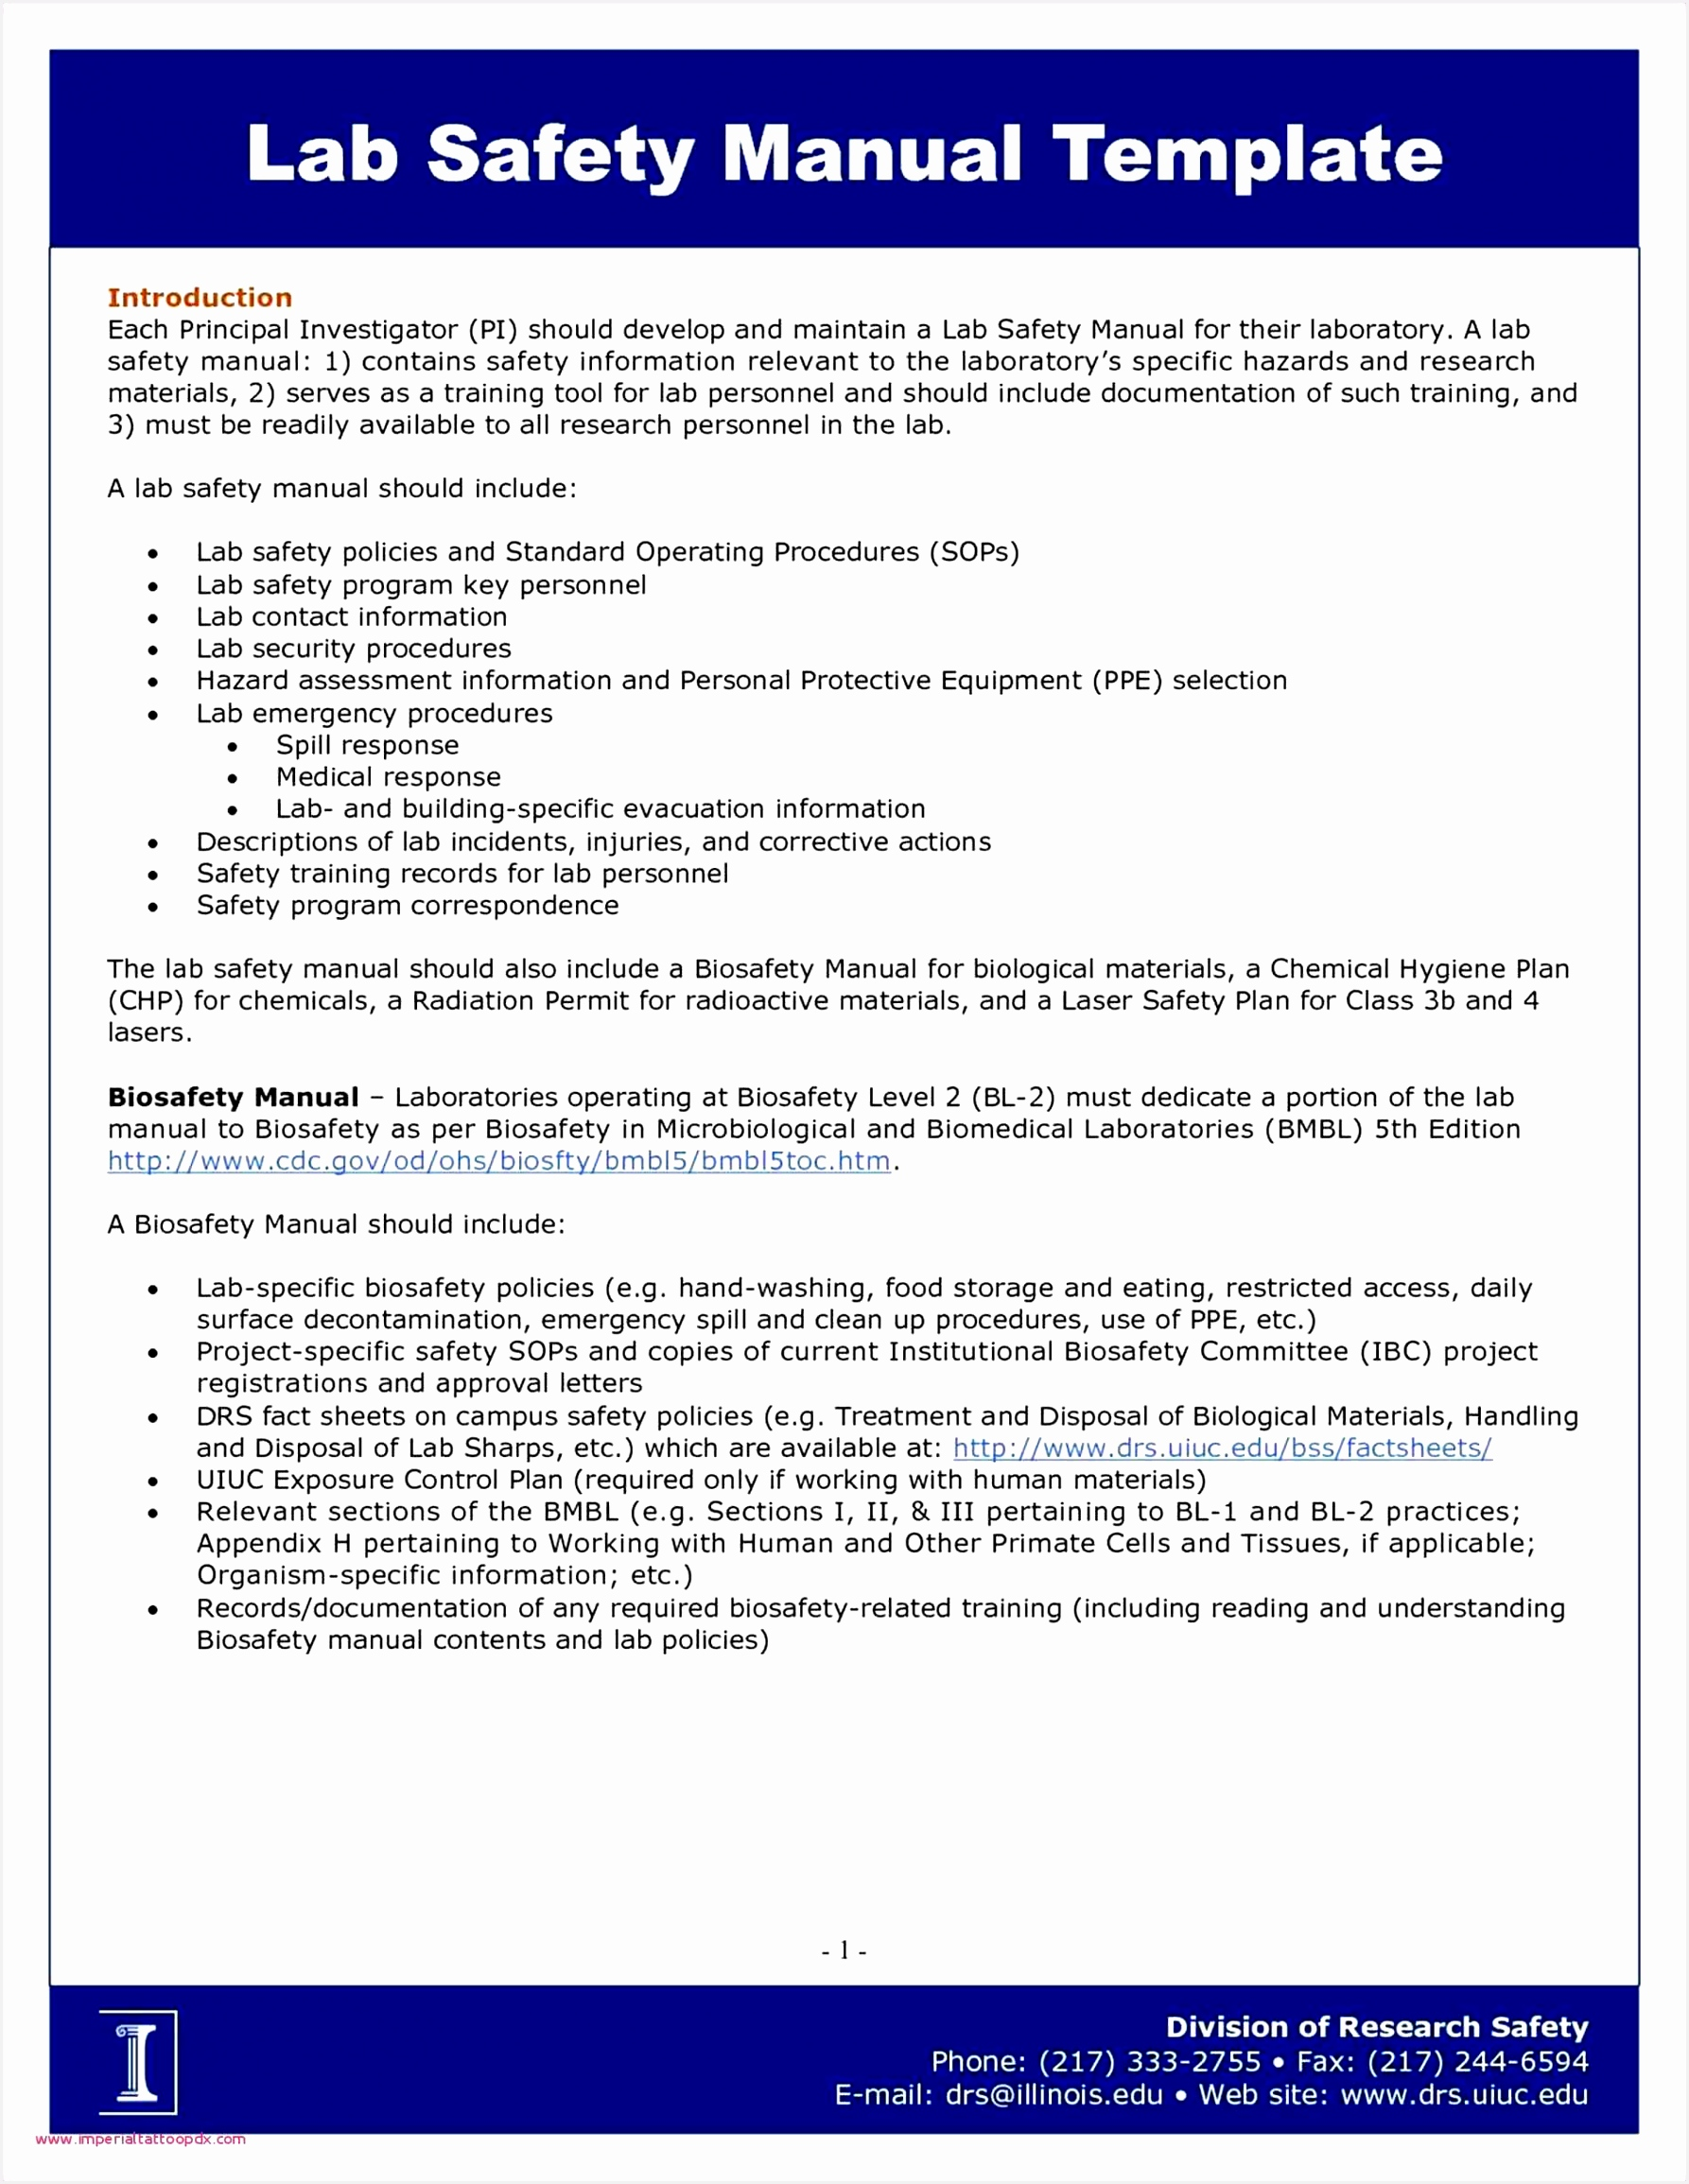 Resignation Letter format In Emails Security Guard Resignation Letter Exceptional Security Cover Letter 23101786cznIc